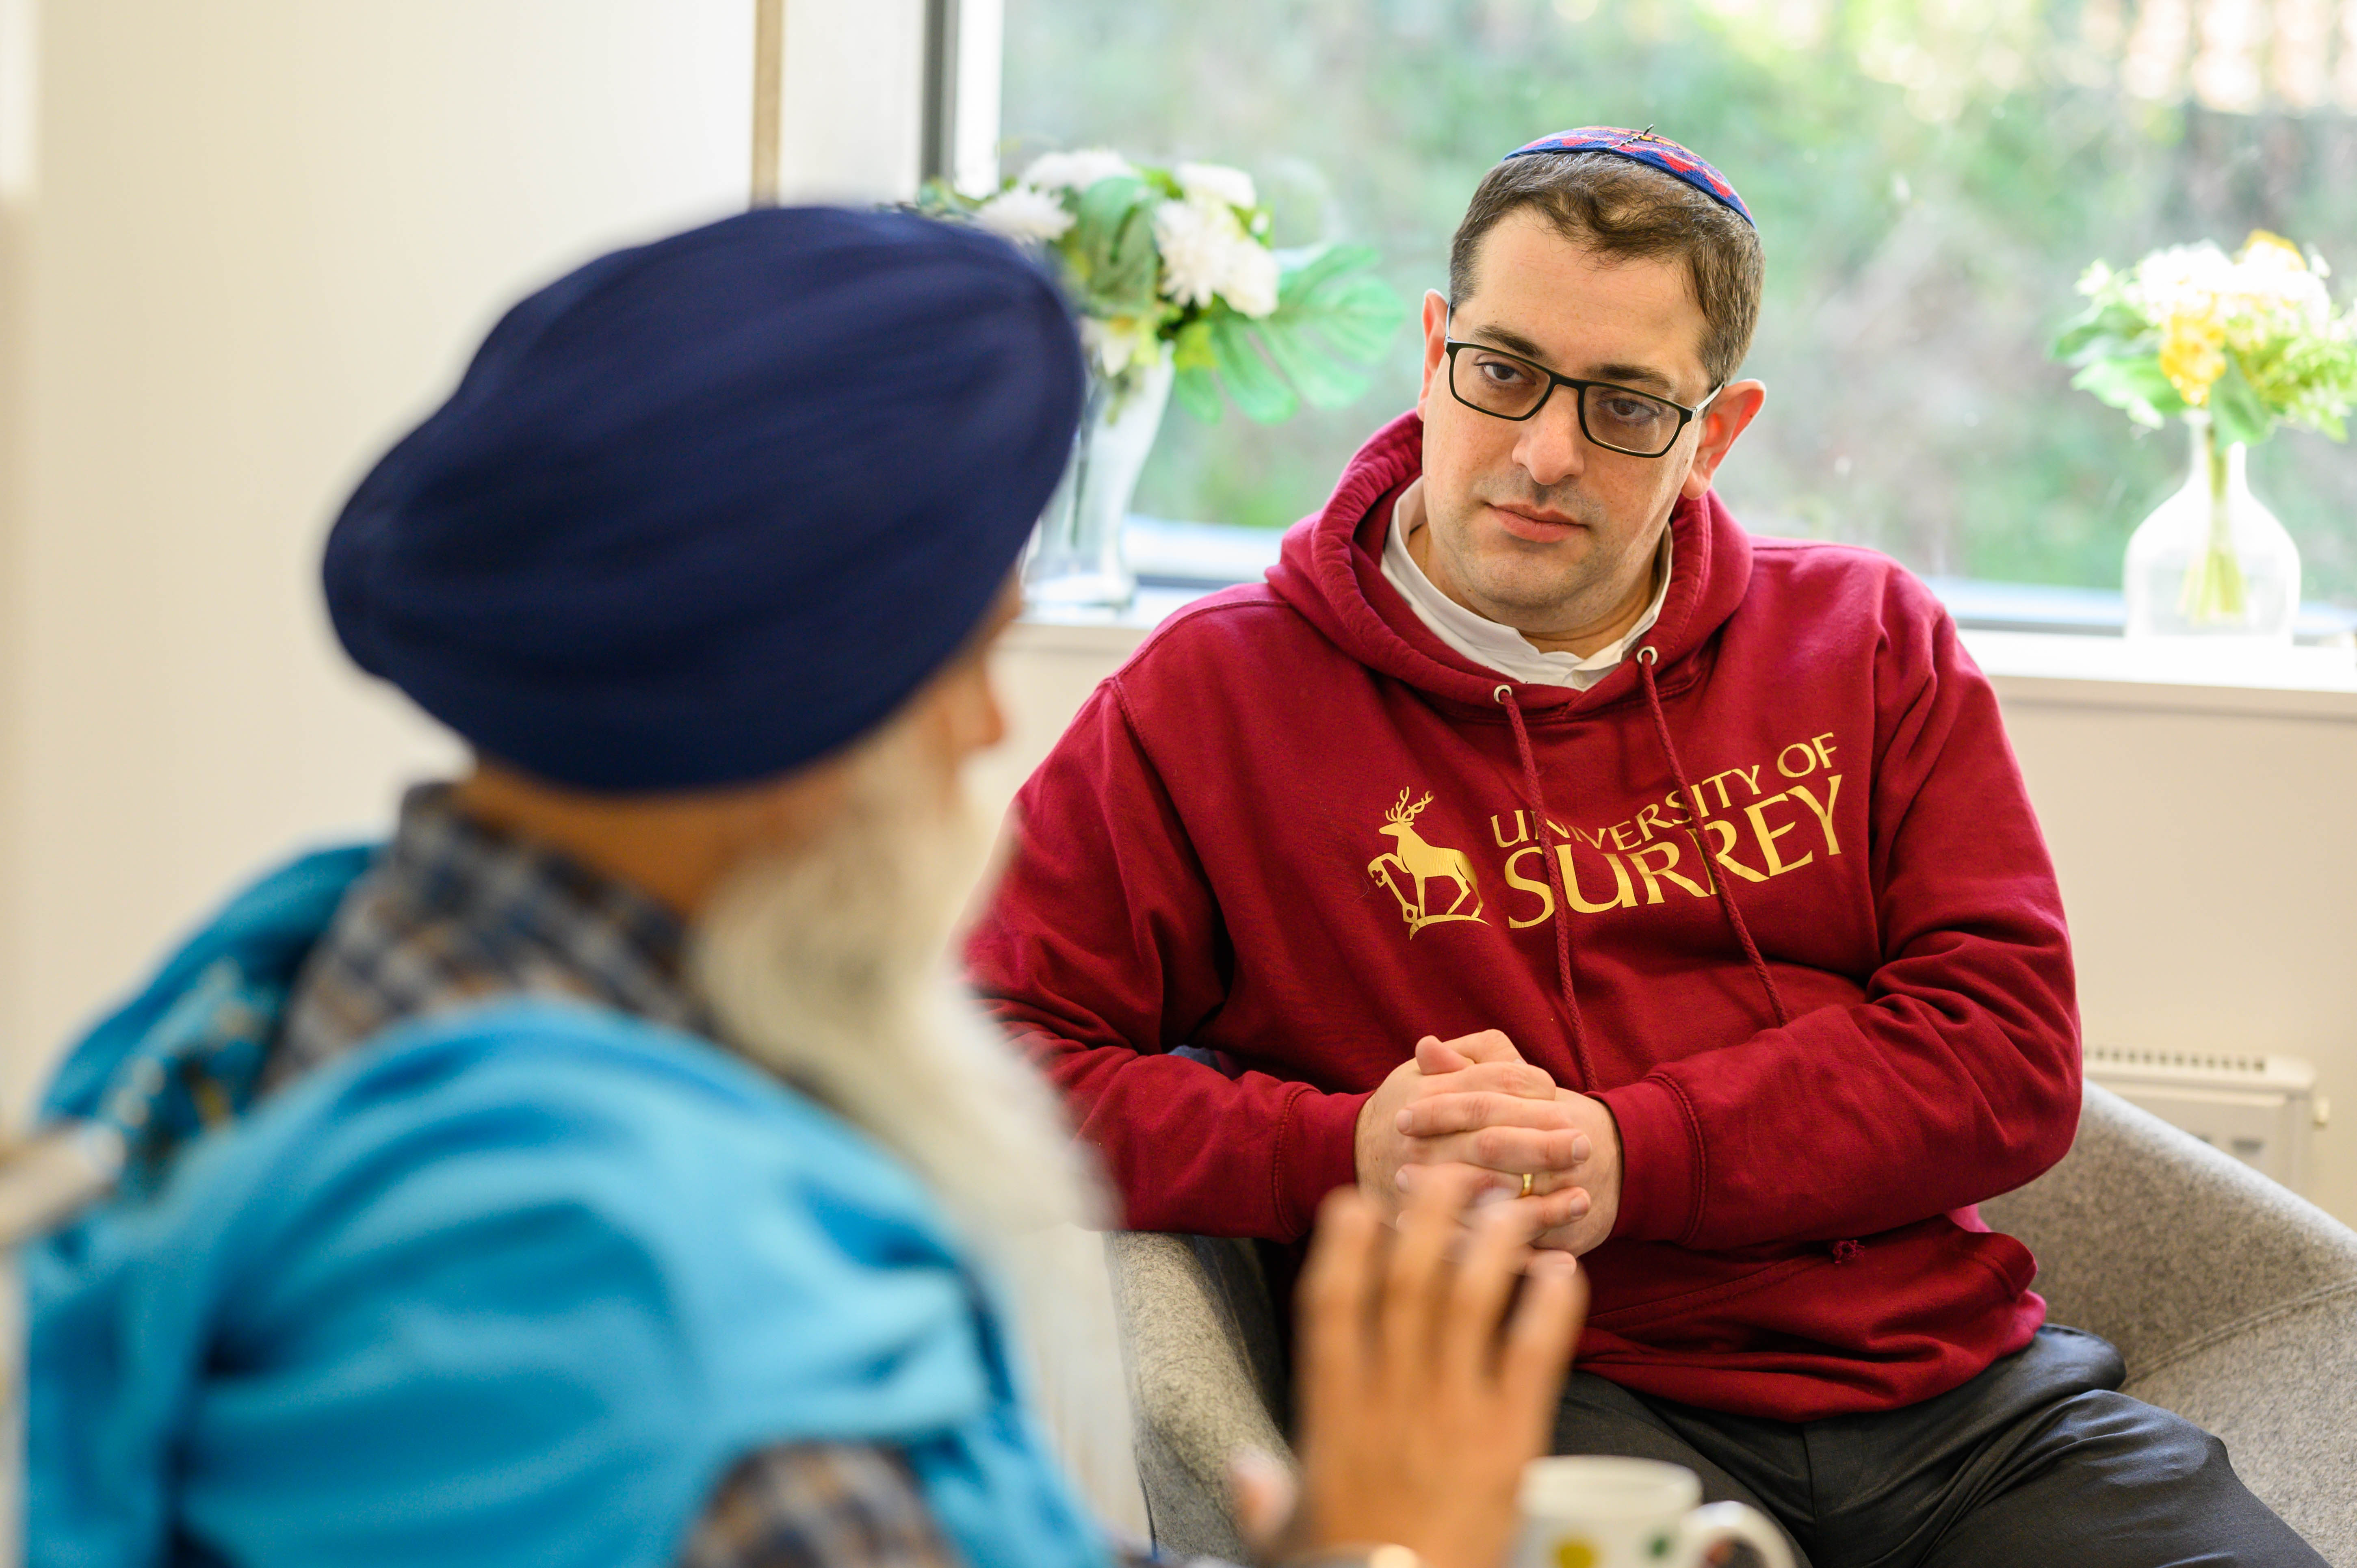 KAICIID Fellow Rabbi Alex Goldberg from the University of Surrey in the UK talks with a member of the Sikh community